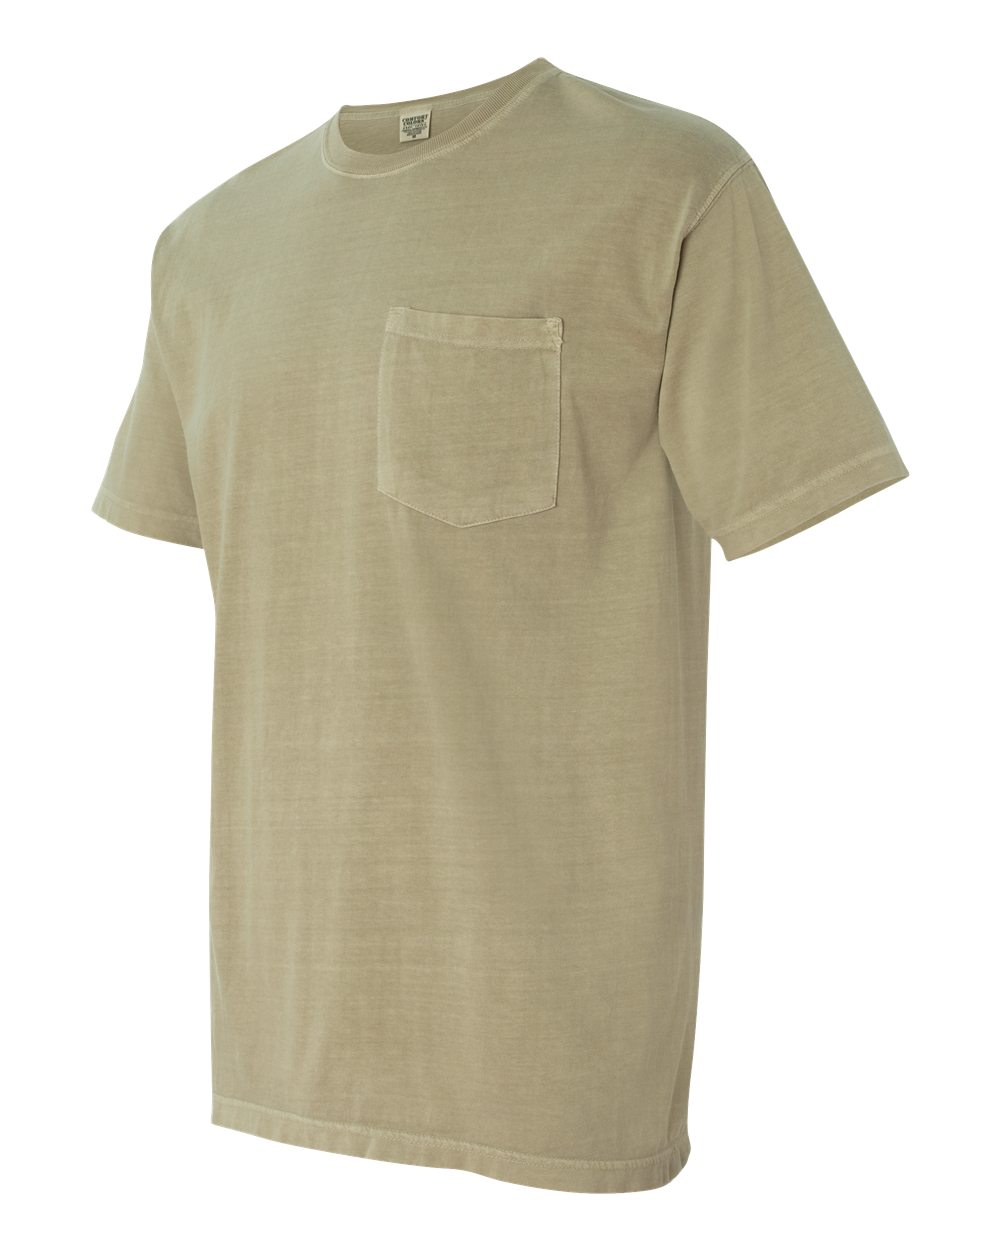 Comfort-Colors-Men-039-s-6-1-oz-Garment-Dyed-Pocket-T-Shirt-6030CC-S-3XL thumbnail 51